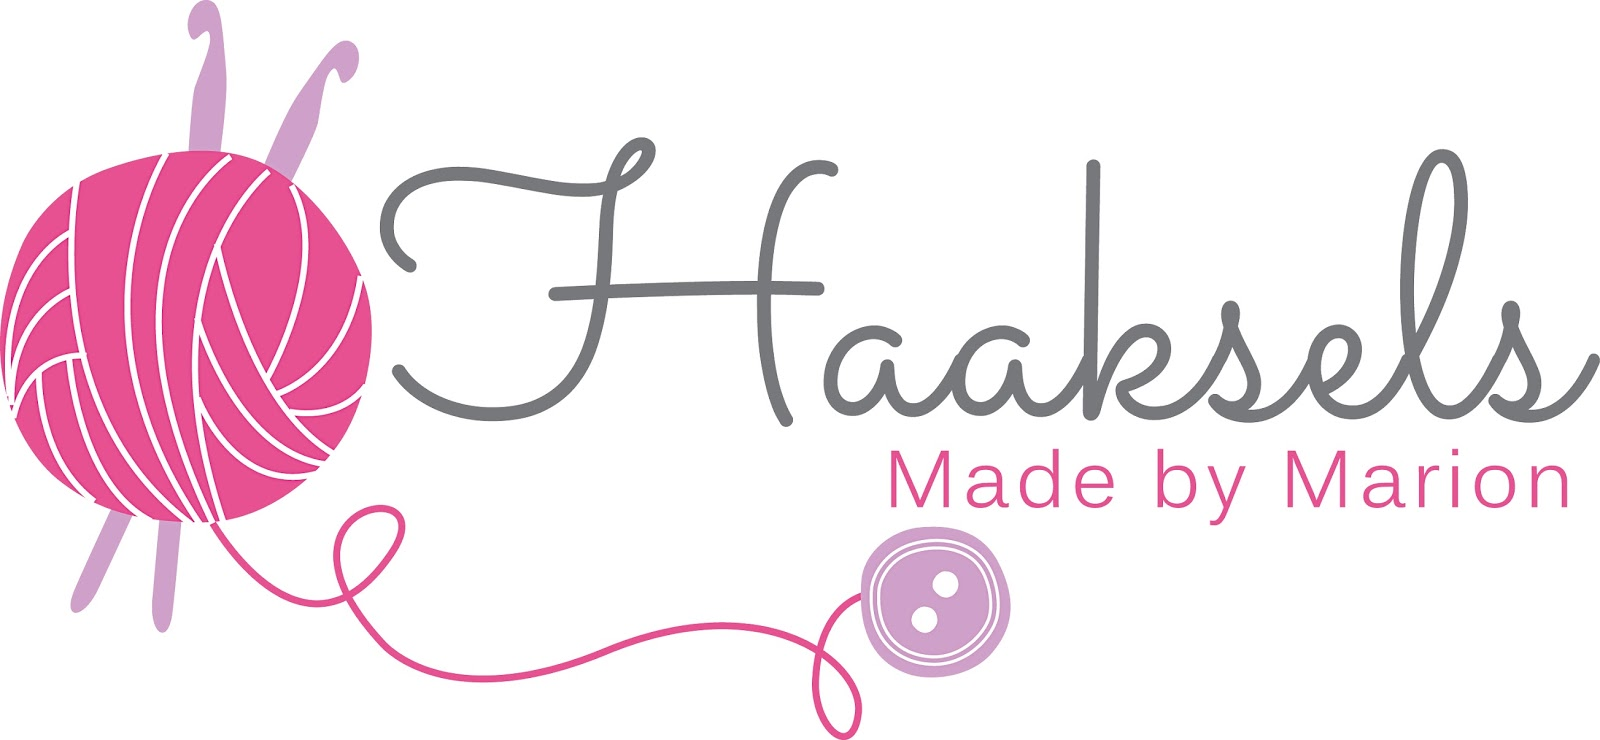 Logo Crochet : Haaksels: Haaktermen vertaald - Crochet terms translated